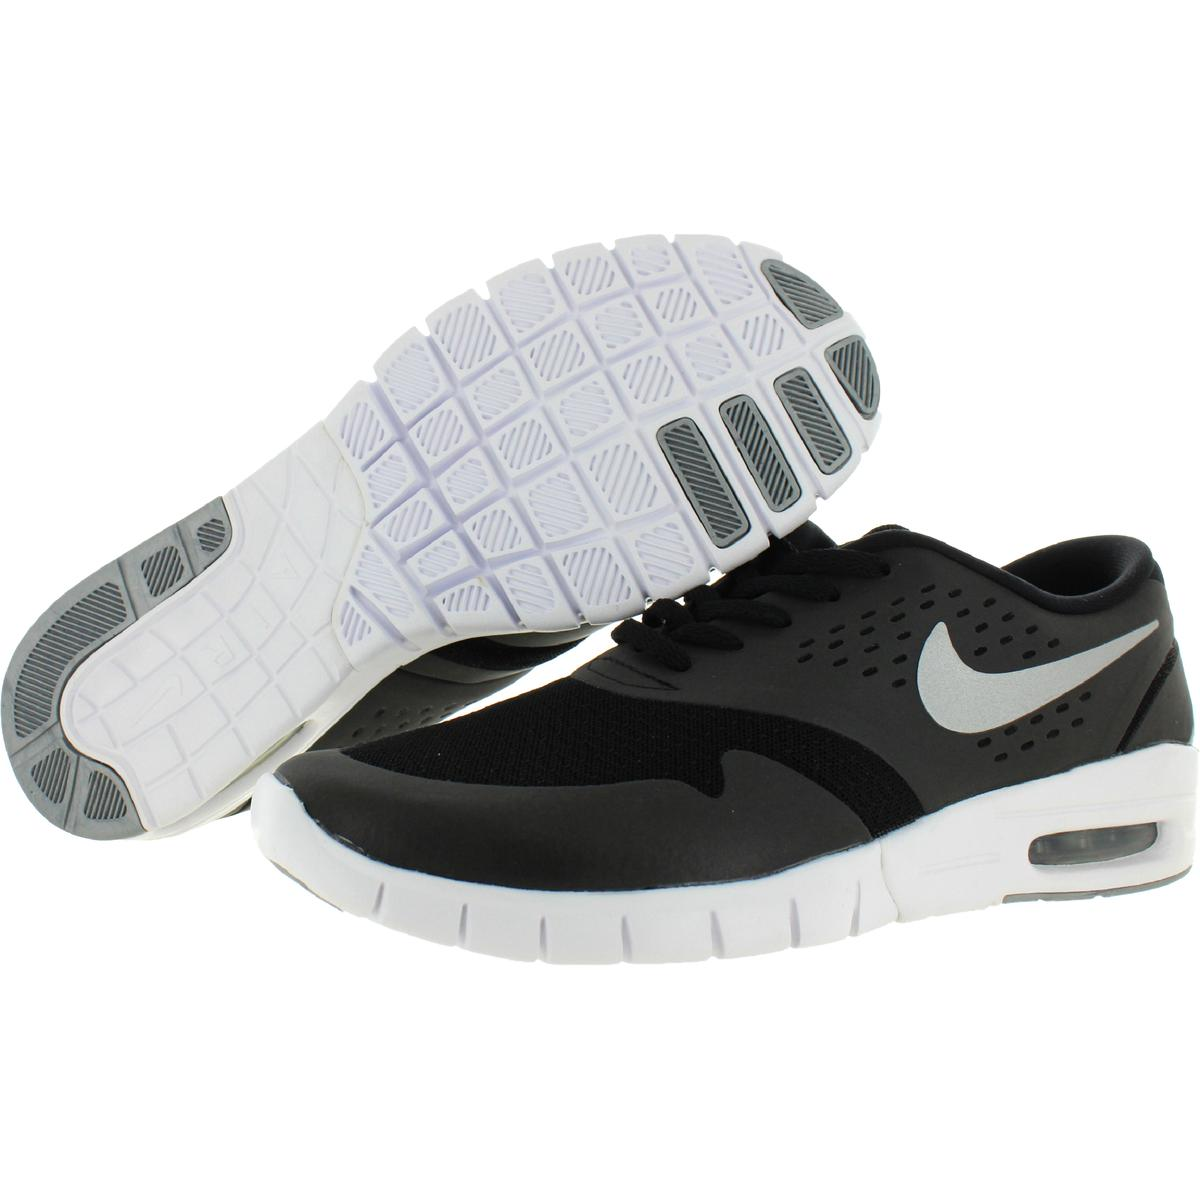 Nike Mens Eric Koston 2 Max Skate Lightweight Running Shoes Sneakers BHFO 9702